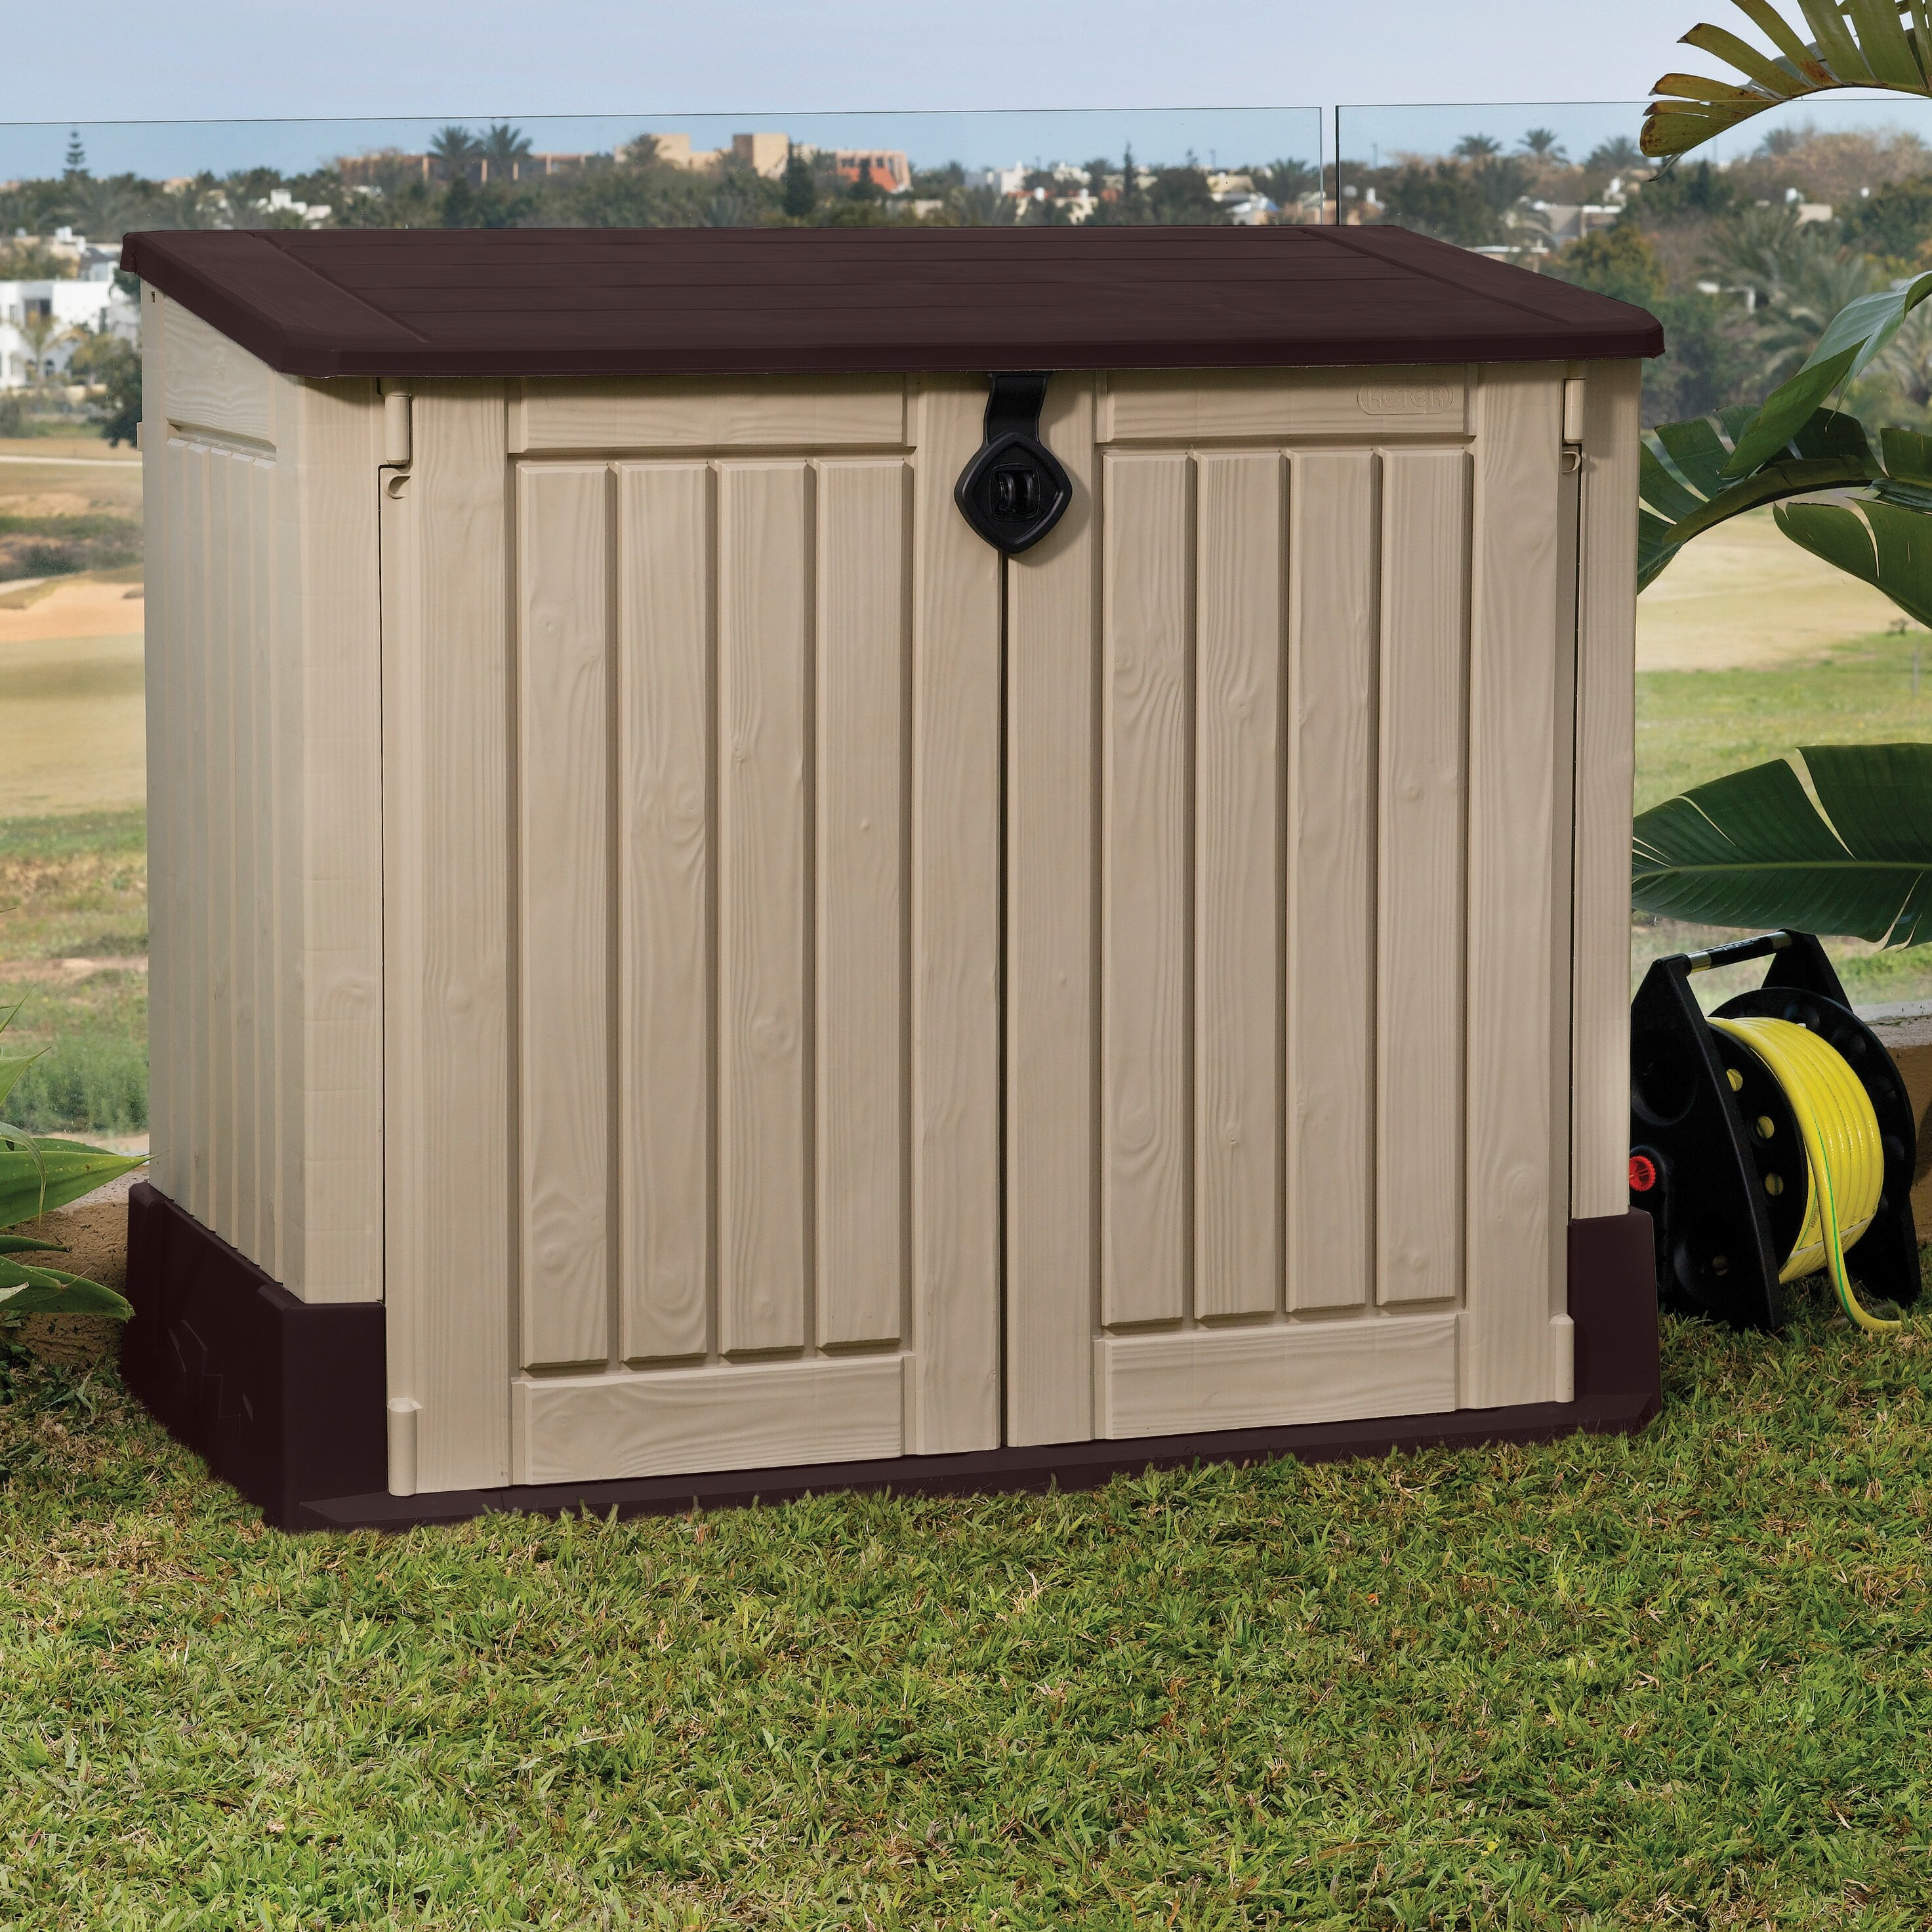 Keter Woodland 4 Ft. W x 2 Ft. D Plastic Garden Shed & Reviews